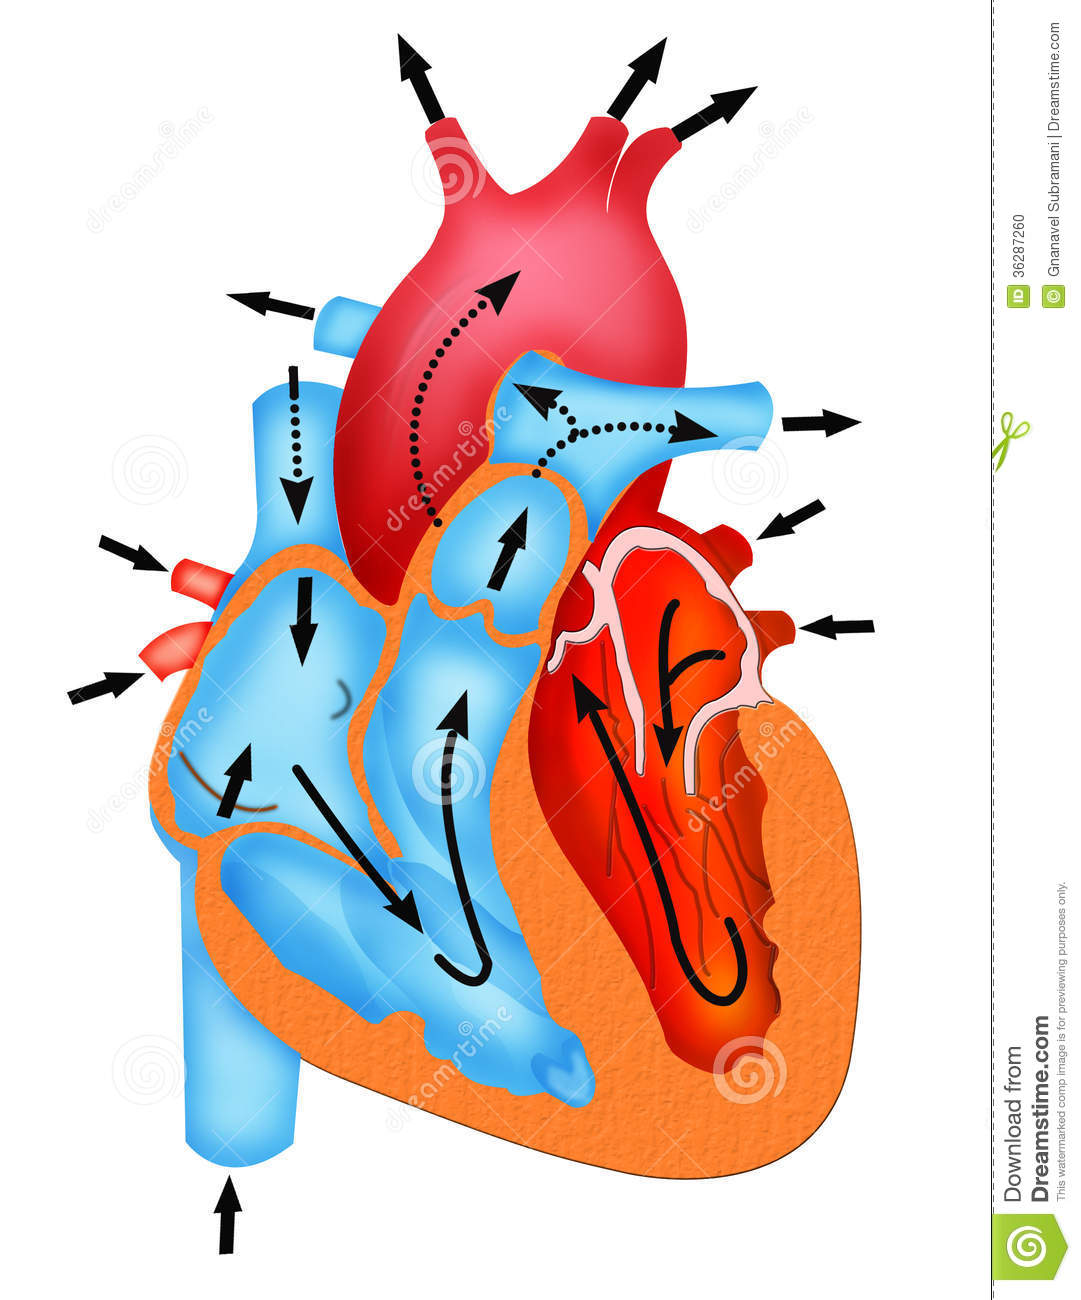 Flow of blood through the heart craftbrewswagfo pathway of blood flow through the heart stock photo image 36287260 sphenoid sciox Image collections